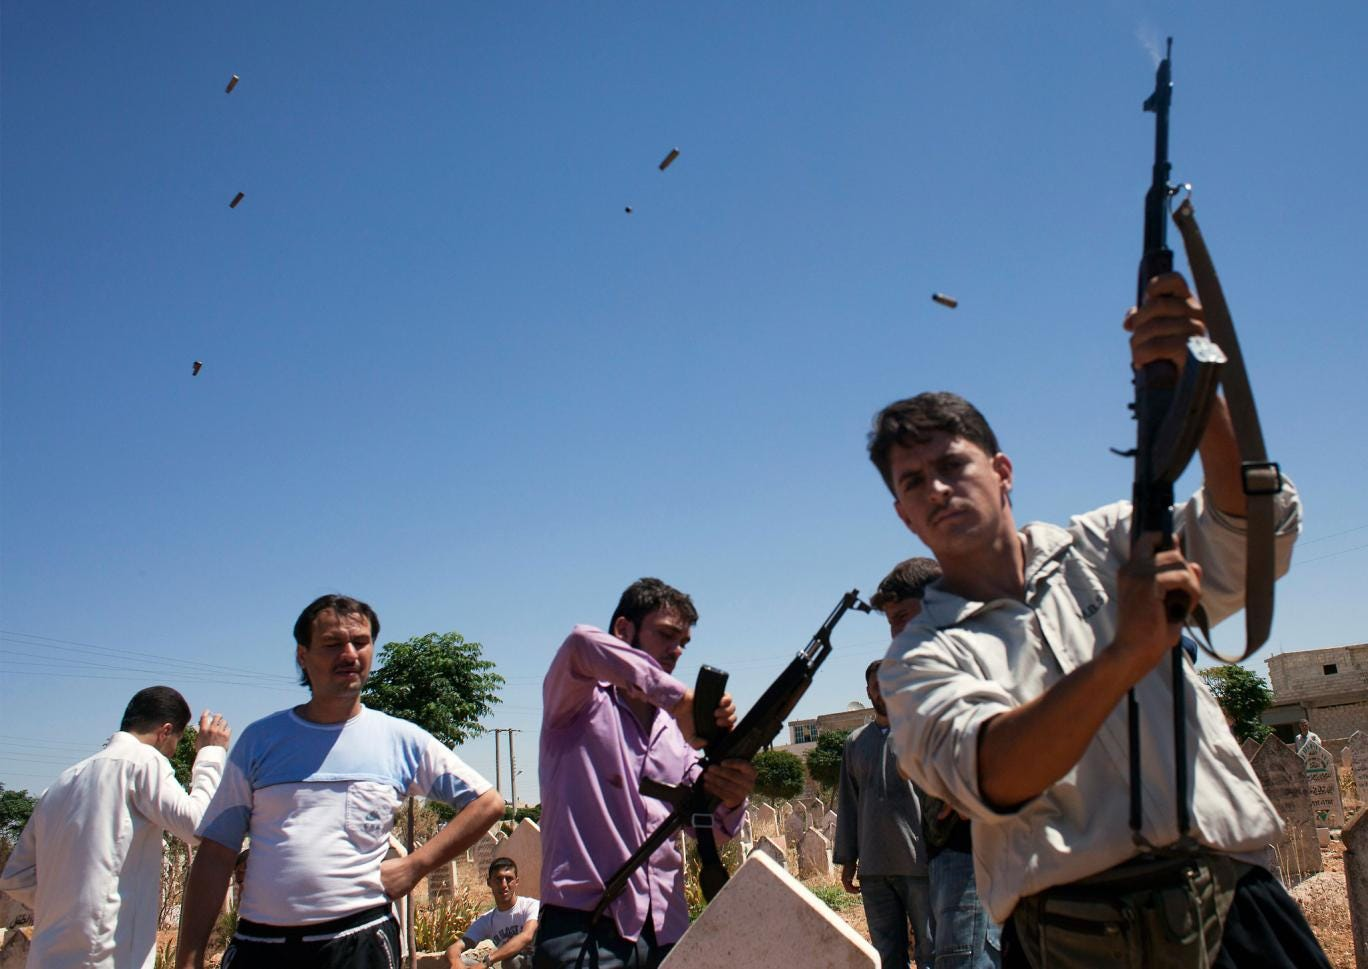 A fighter from the Free Syrian Army fires rounds into the air on August 21, 2012, during the funeral of 17-year old Ahmed Hamoudi